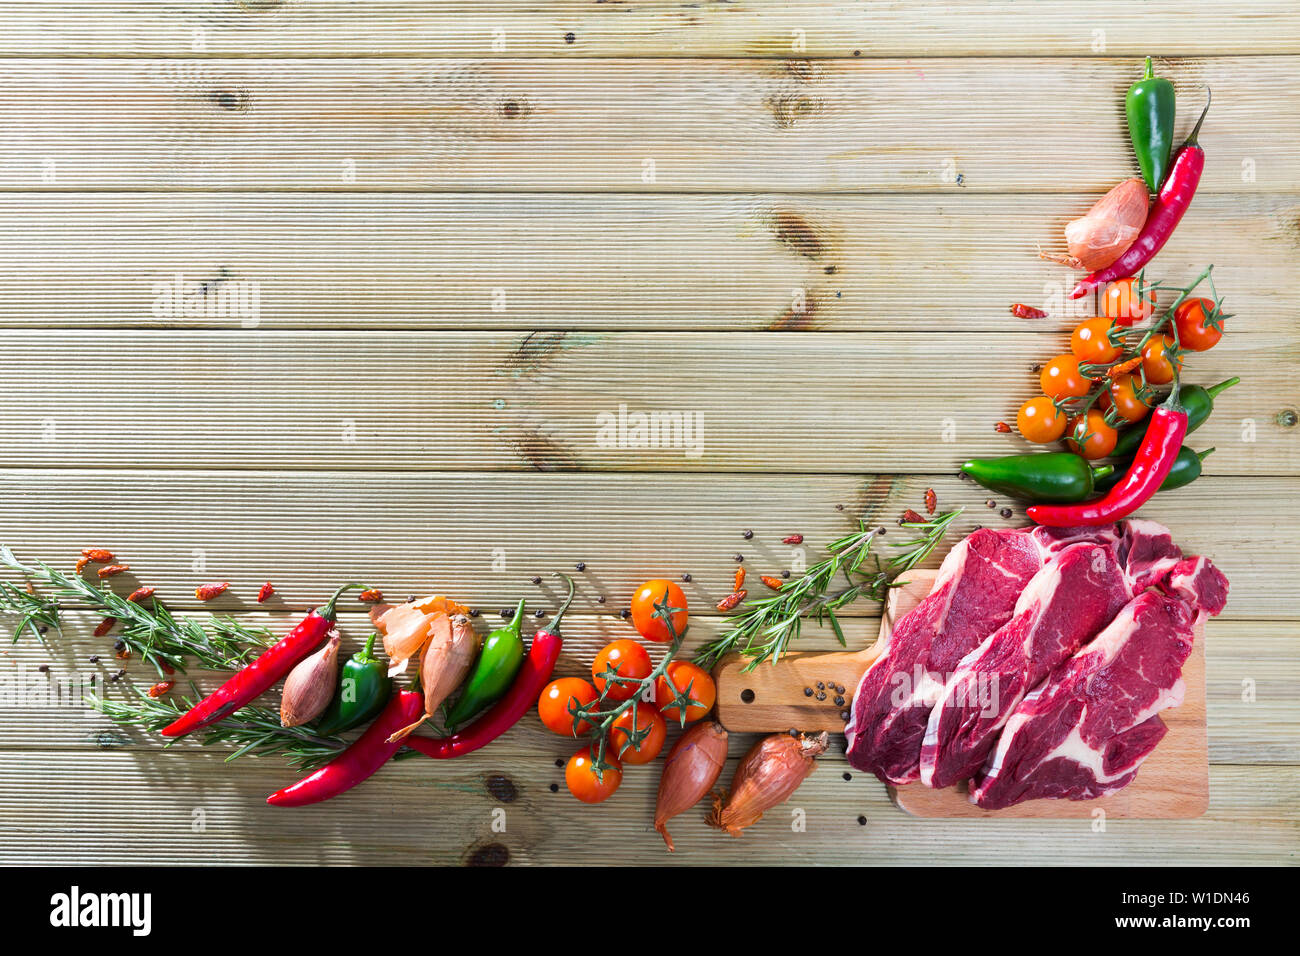 Border of food objects - sliced veal on wooden cutting board, fresh vegetables and herbs - Stock Image